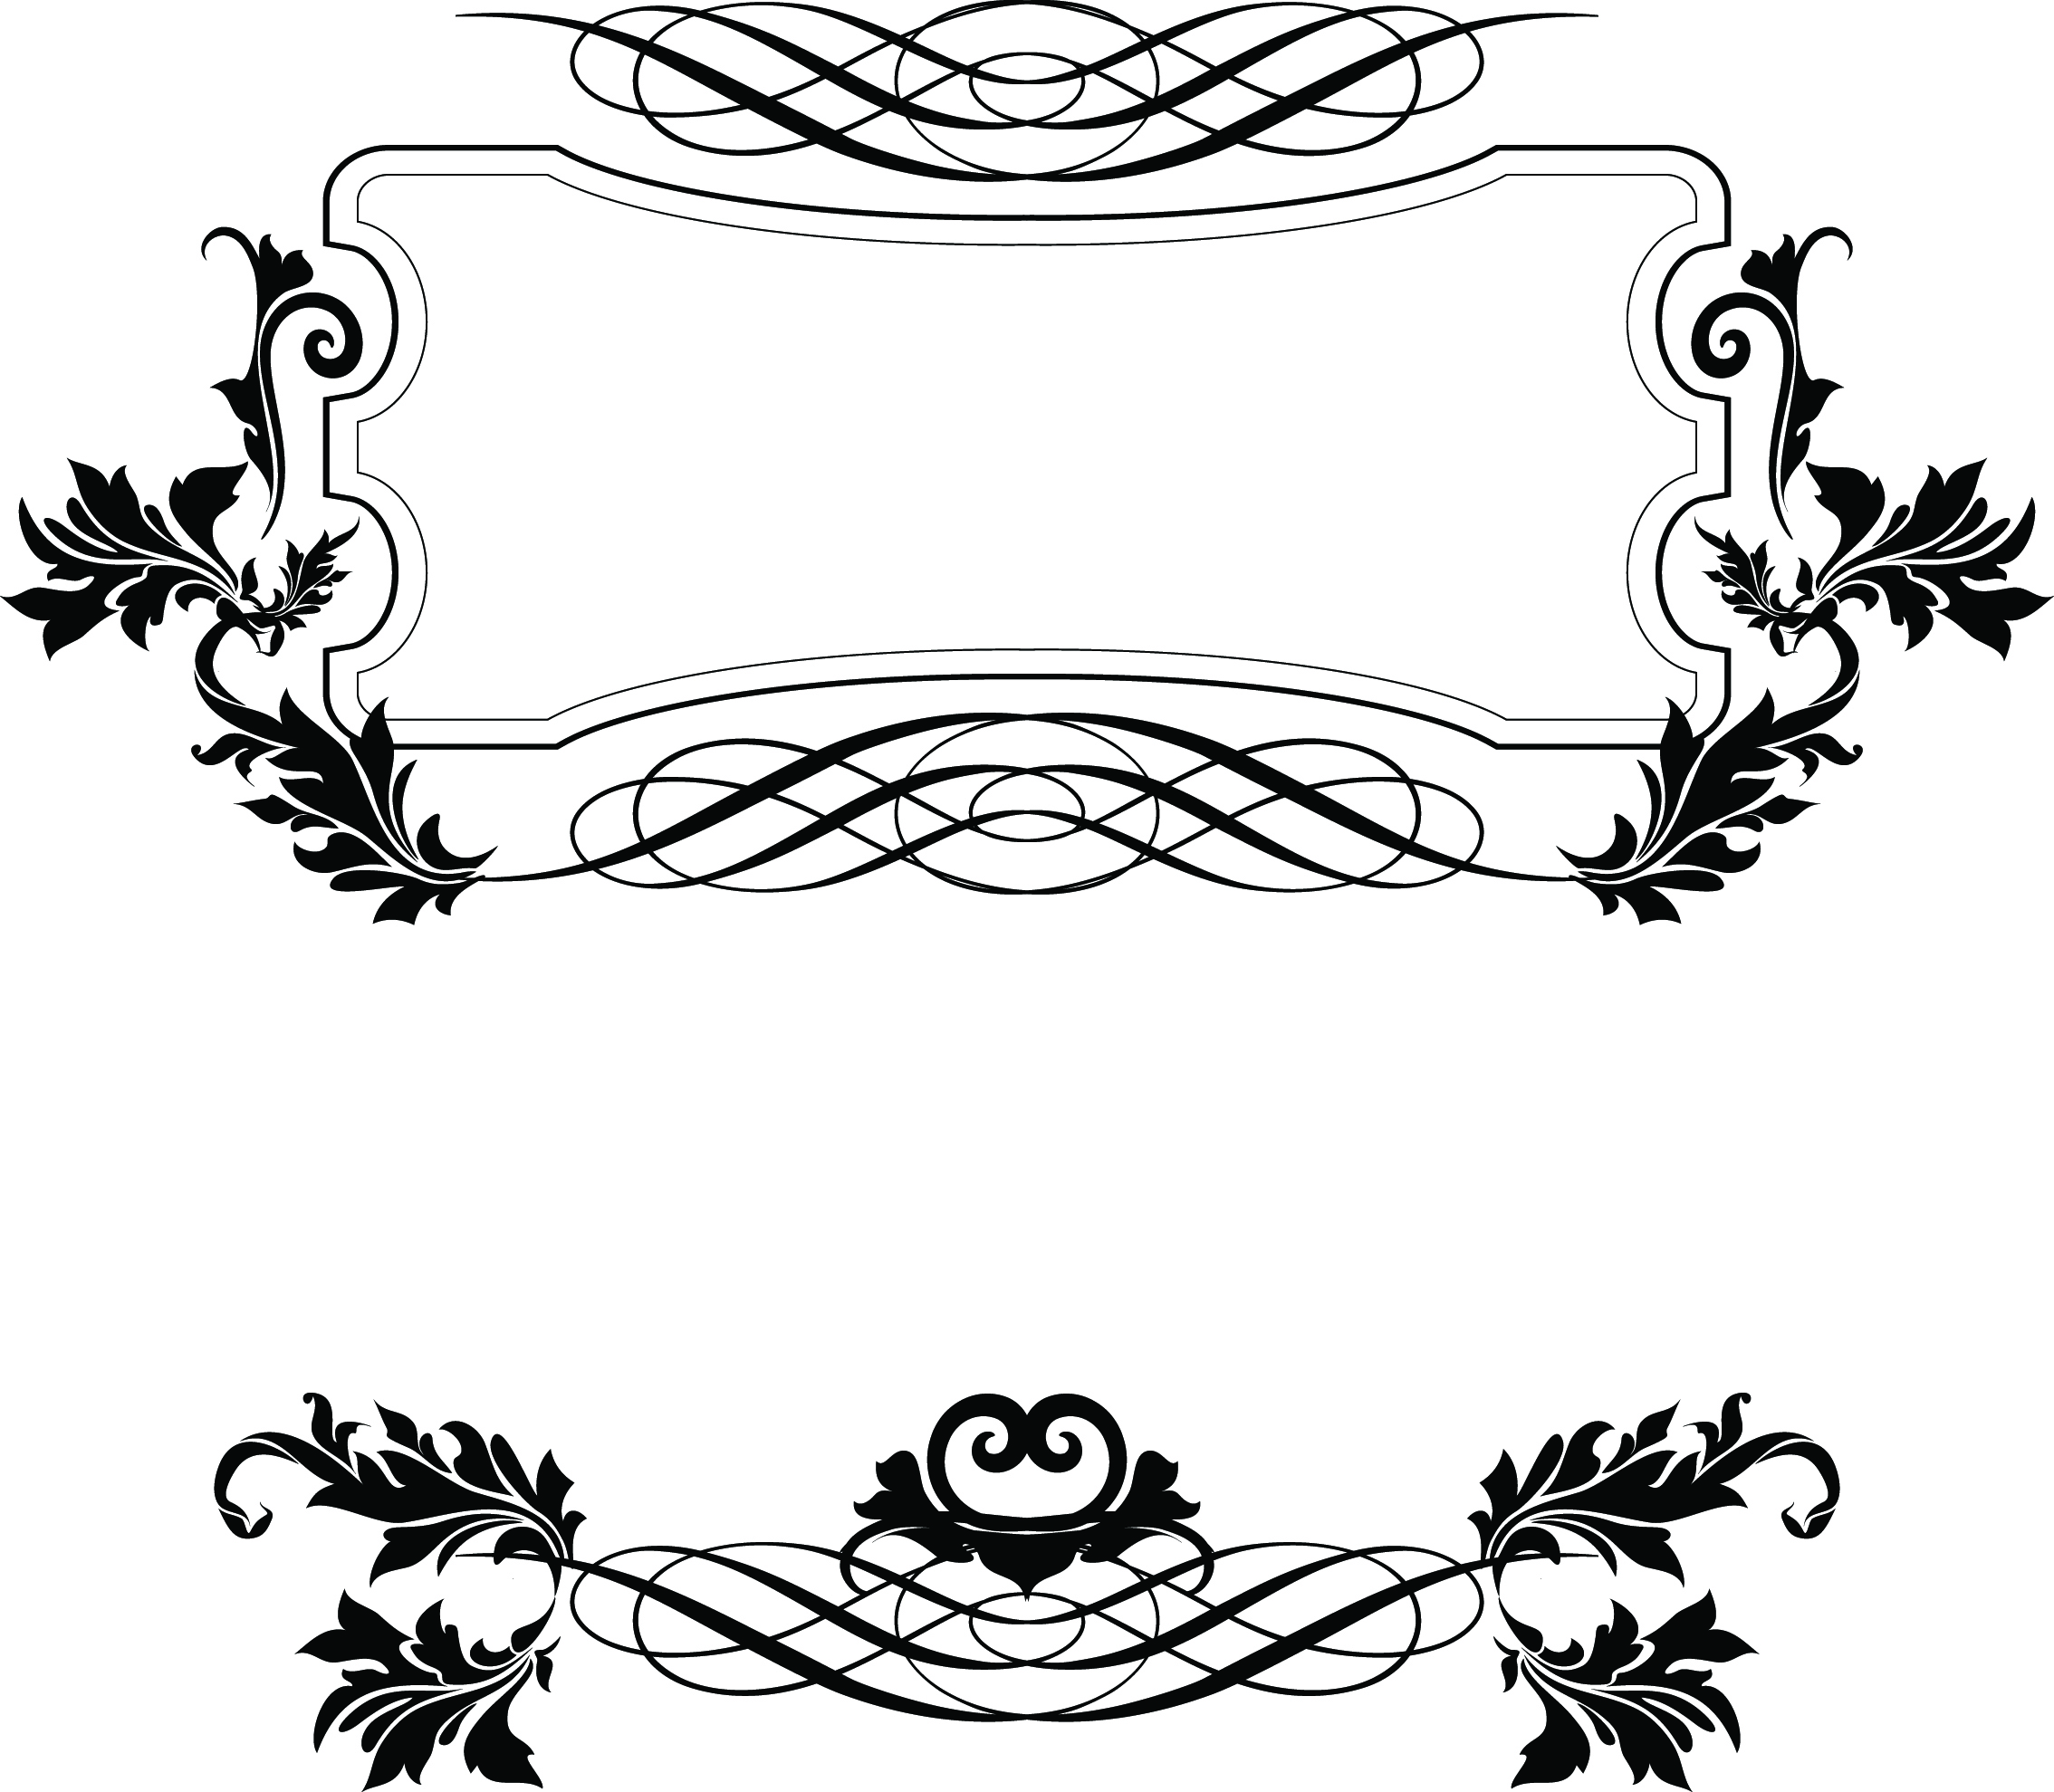 18 Decorative Borders Vector Images